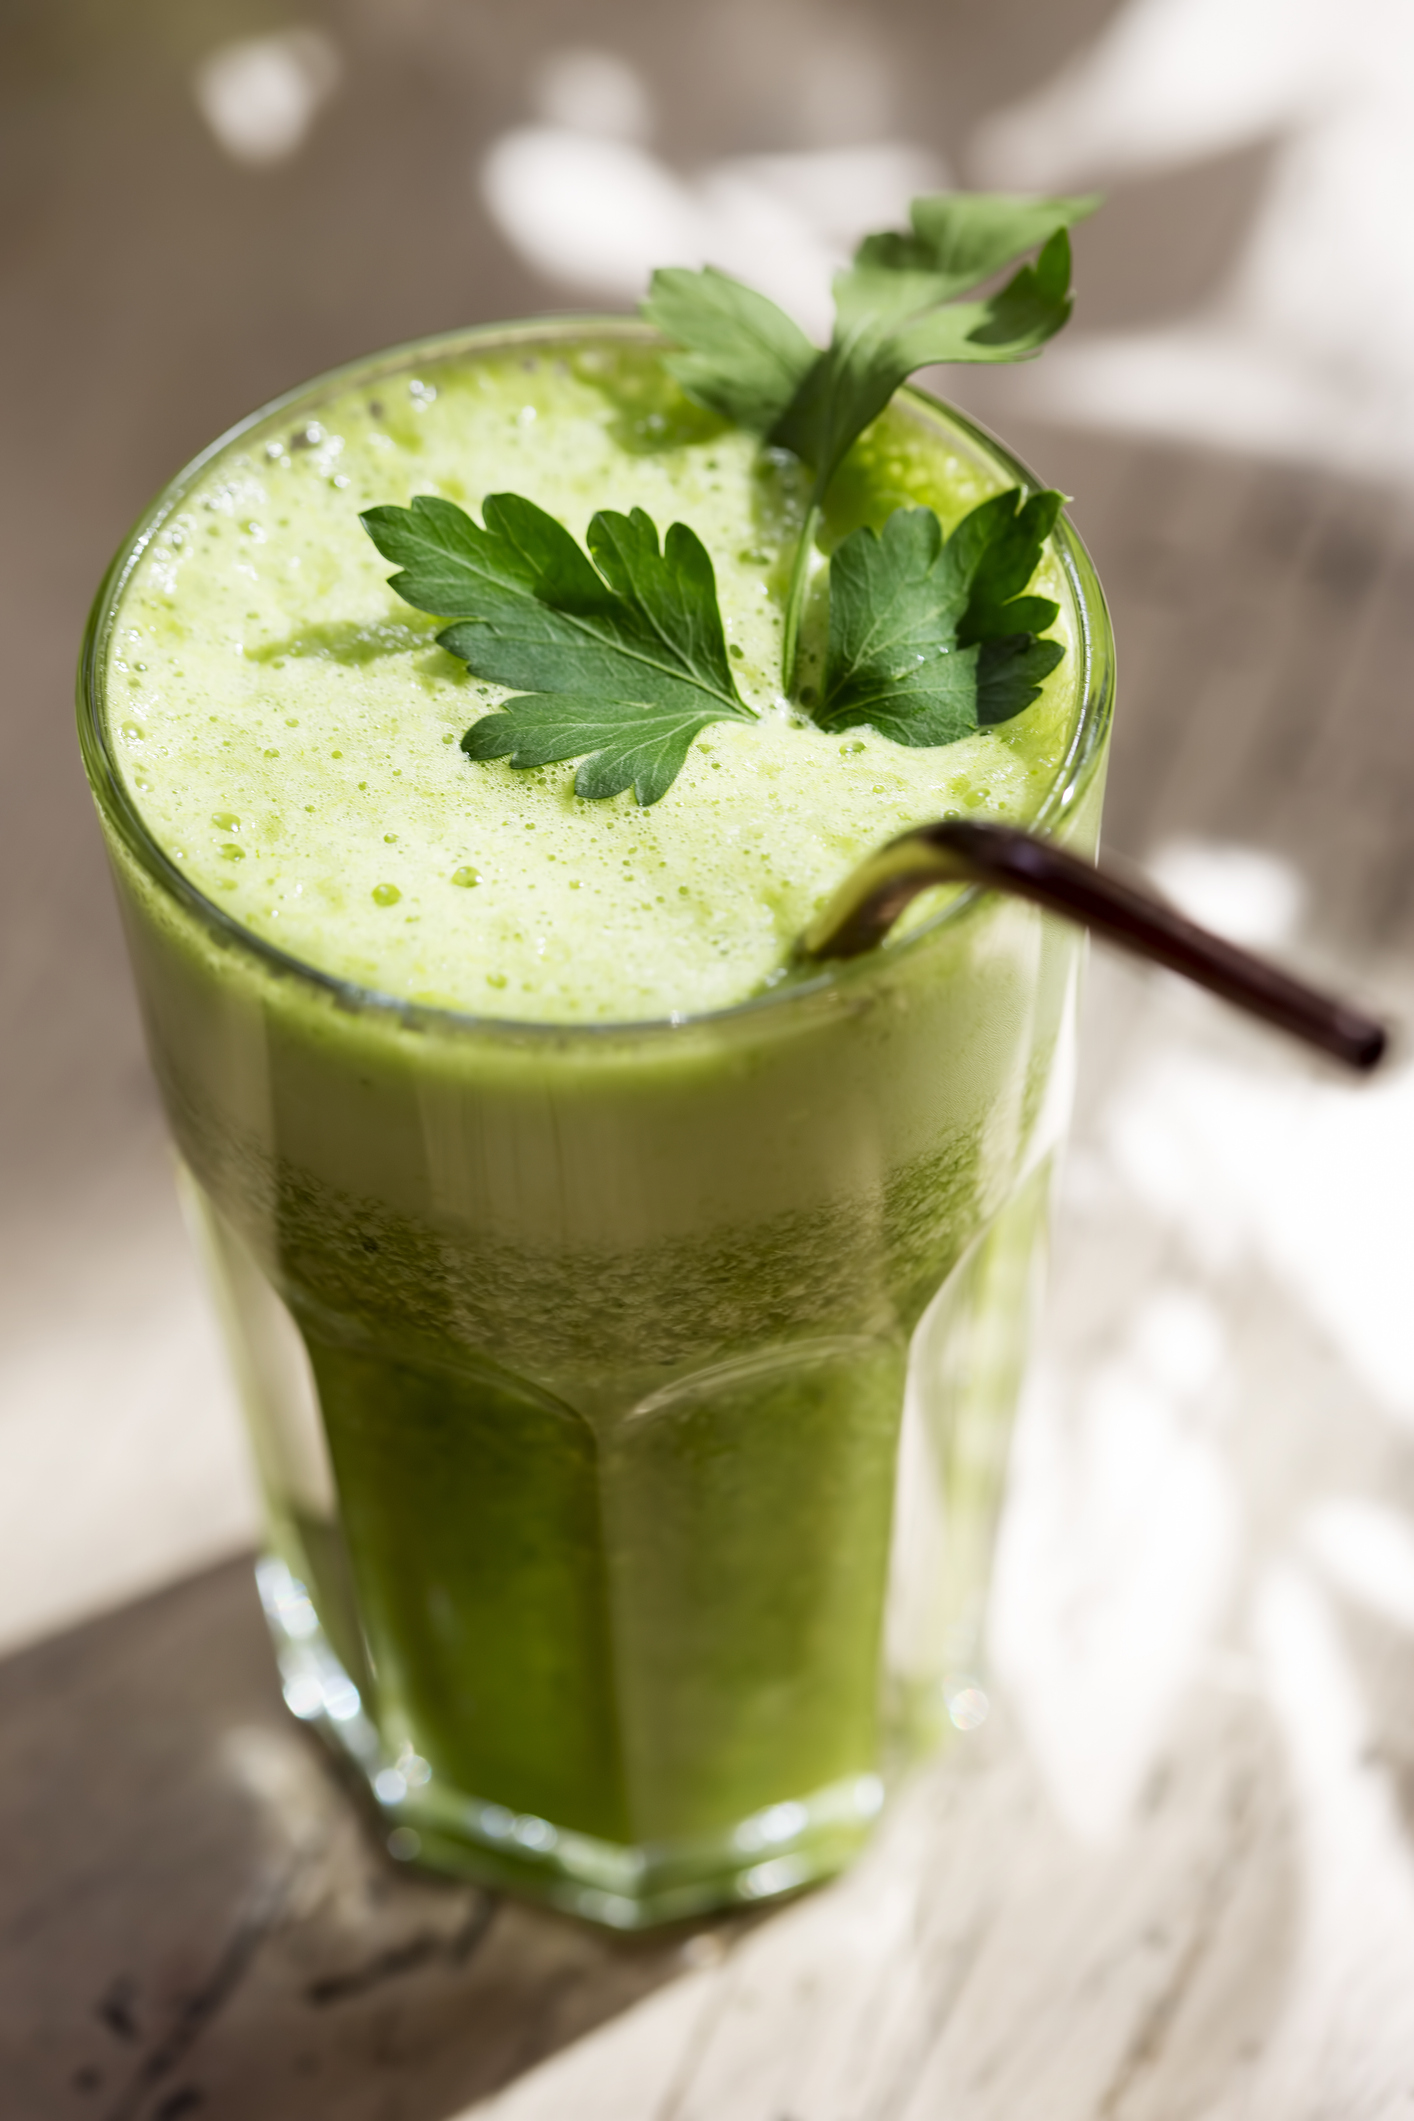 Green smoothie with spinach, pear & parsley